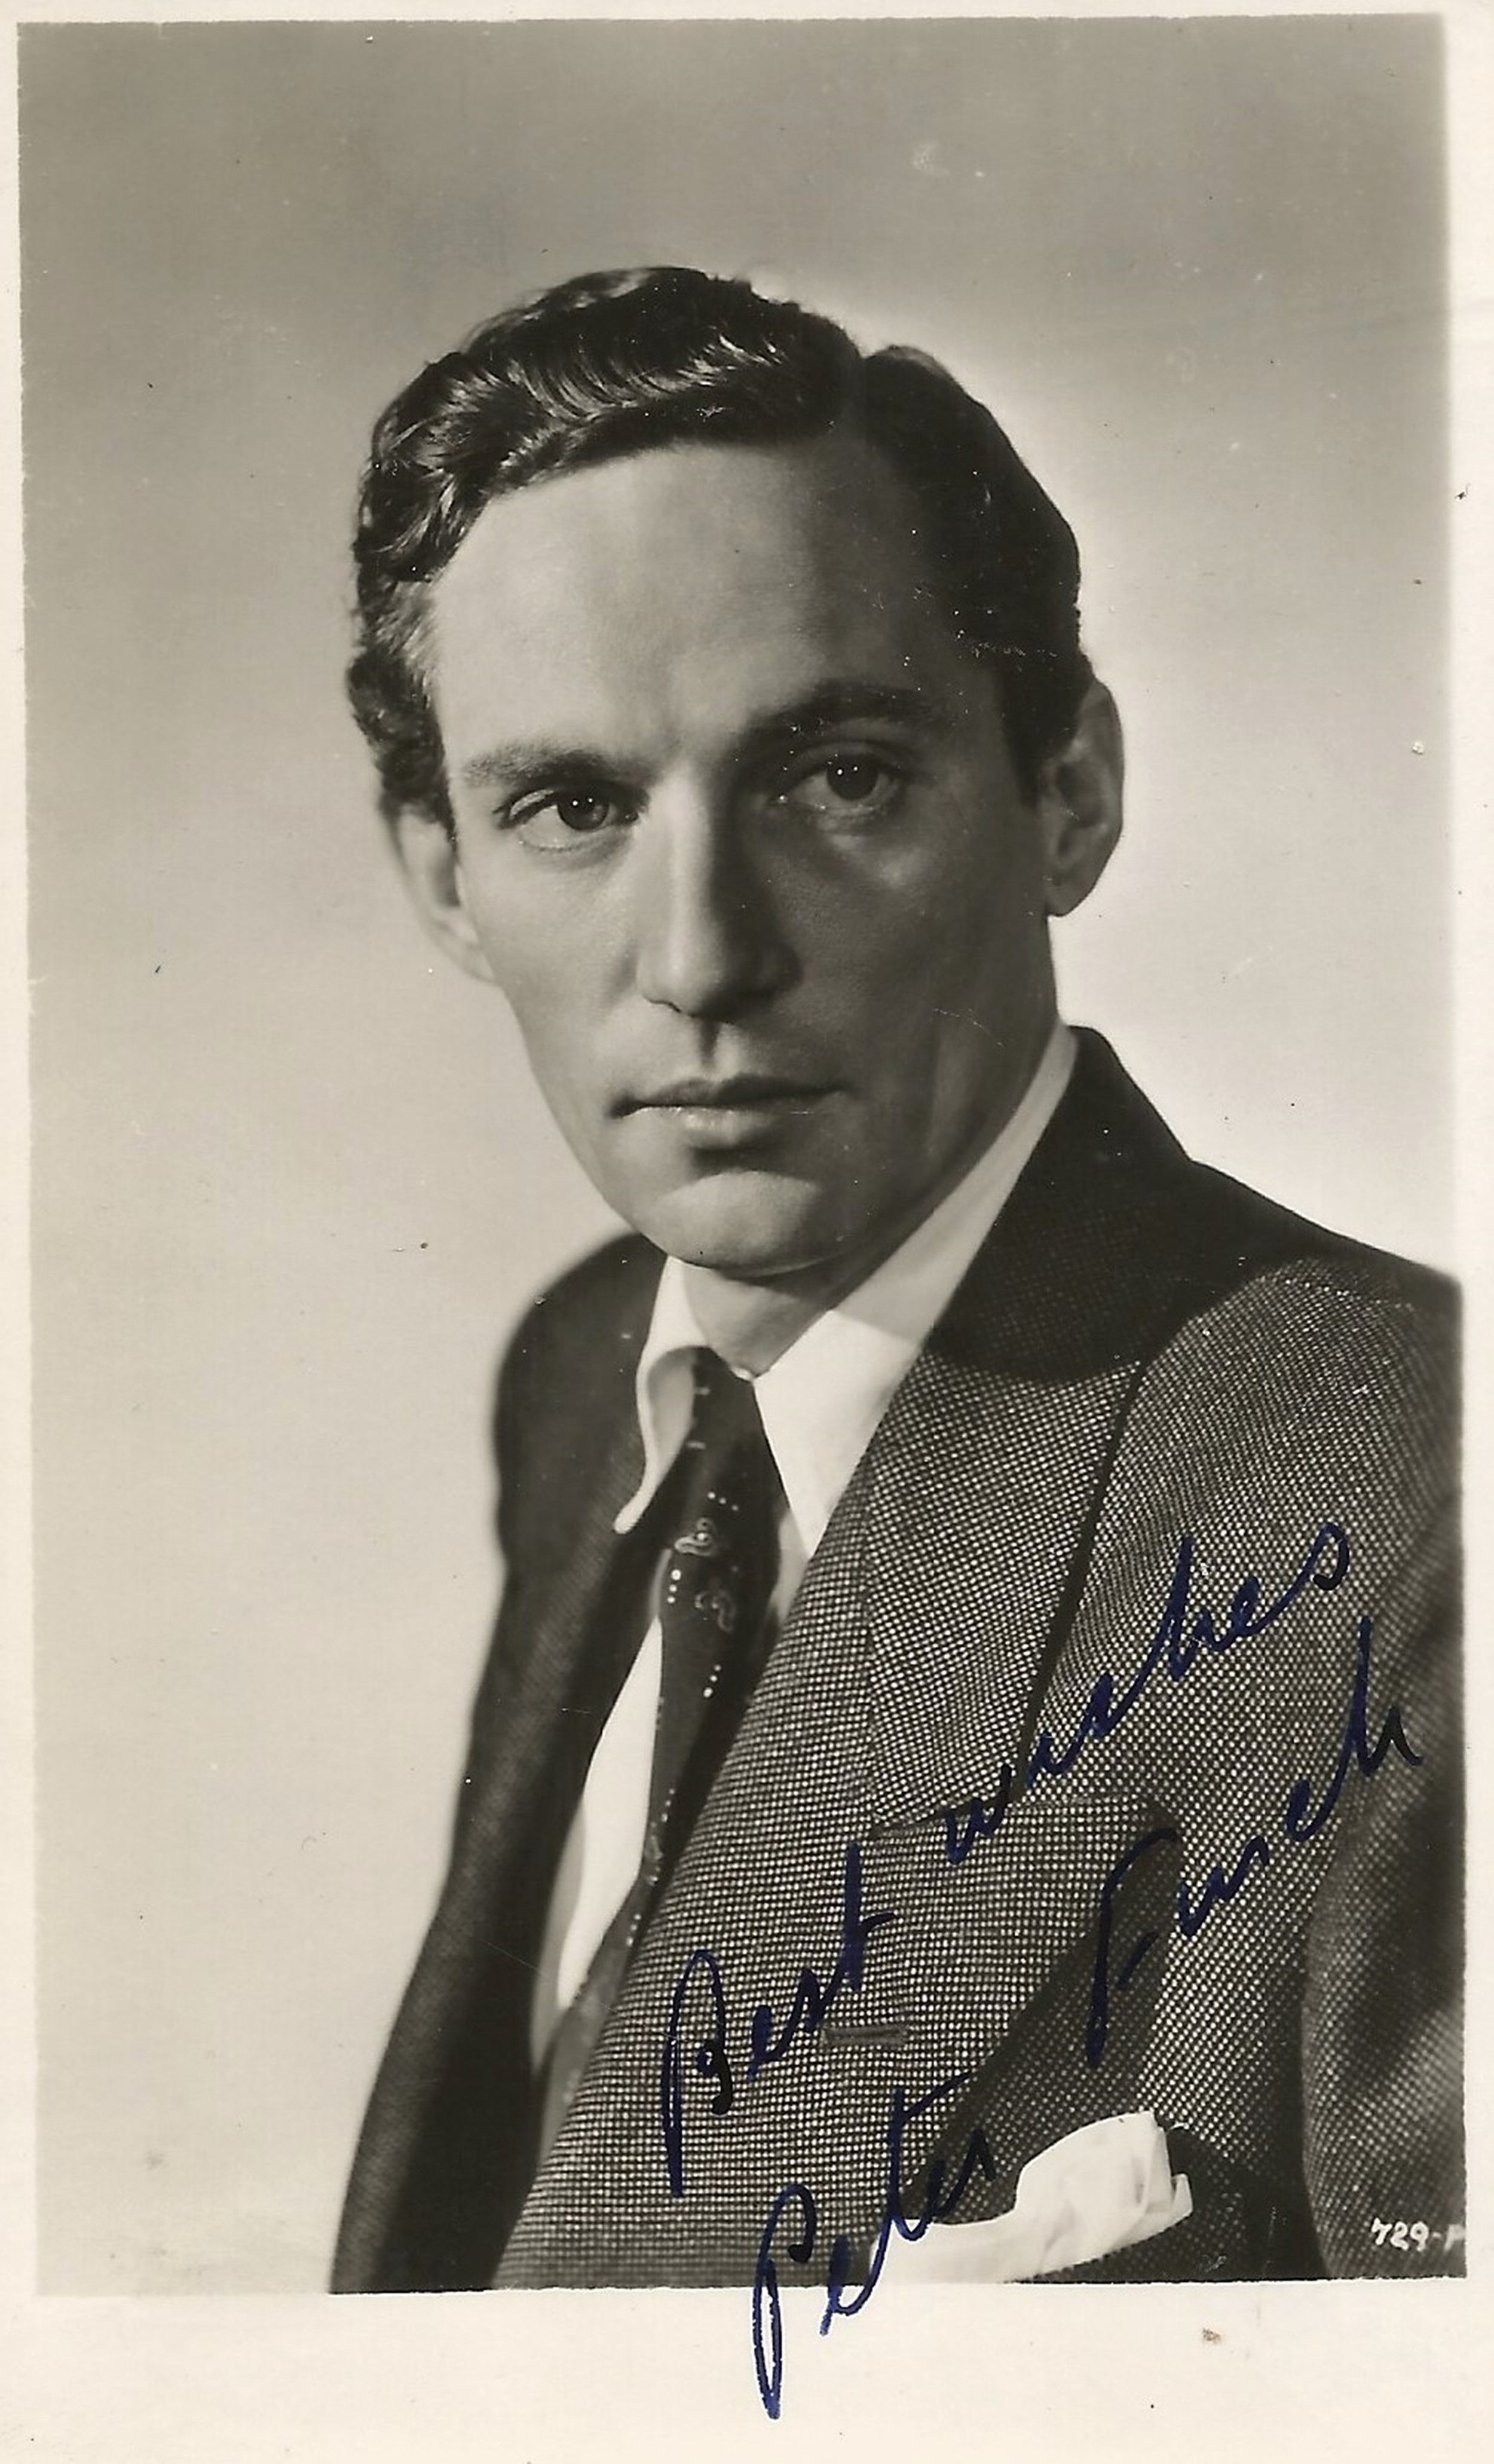 Peter Finch signed 5x3 black and white photo. Good condition. All autographs come with a Certificate